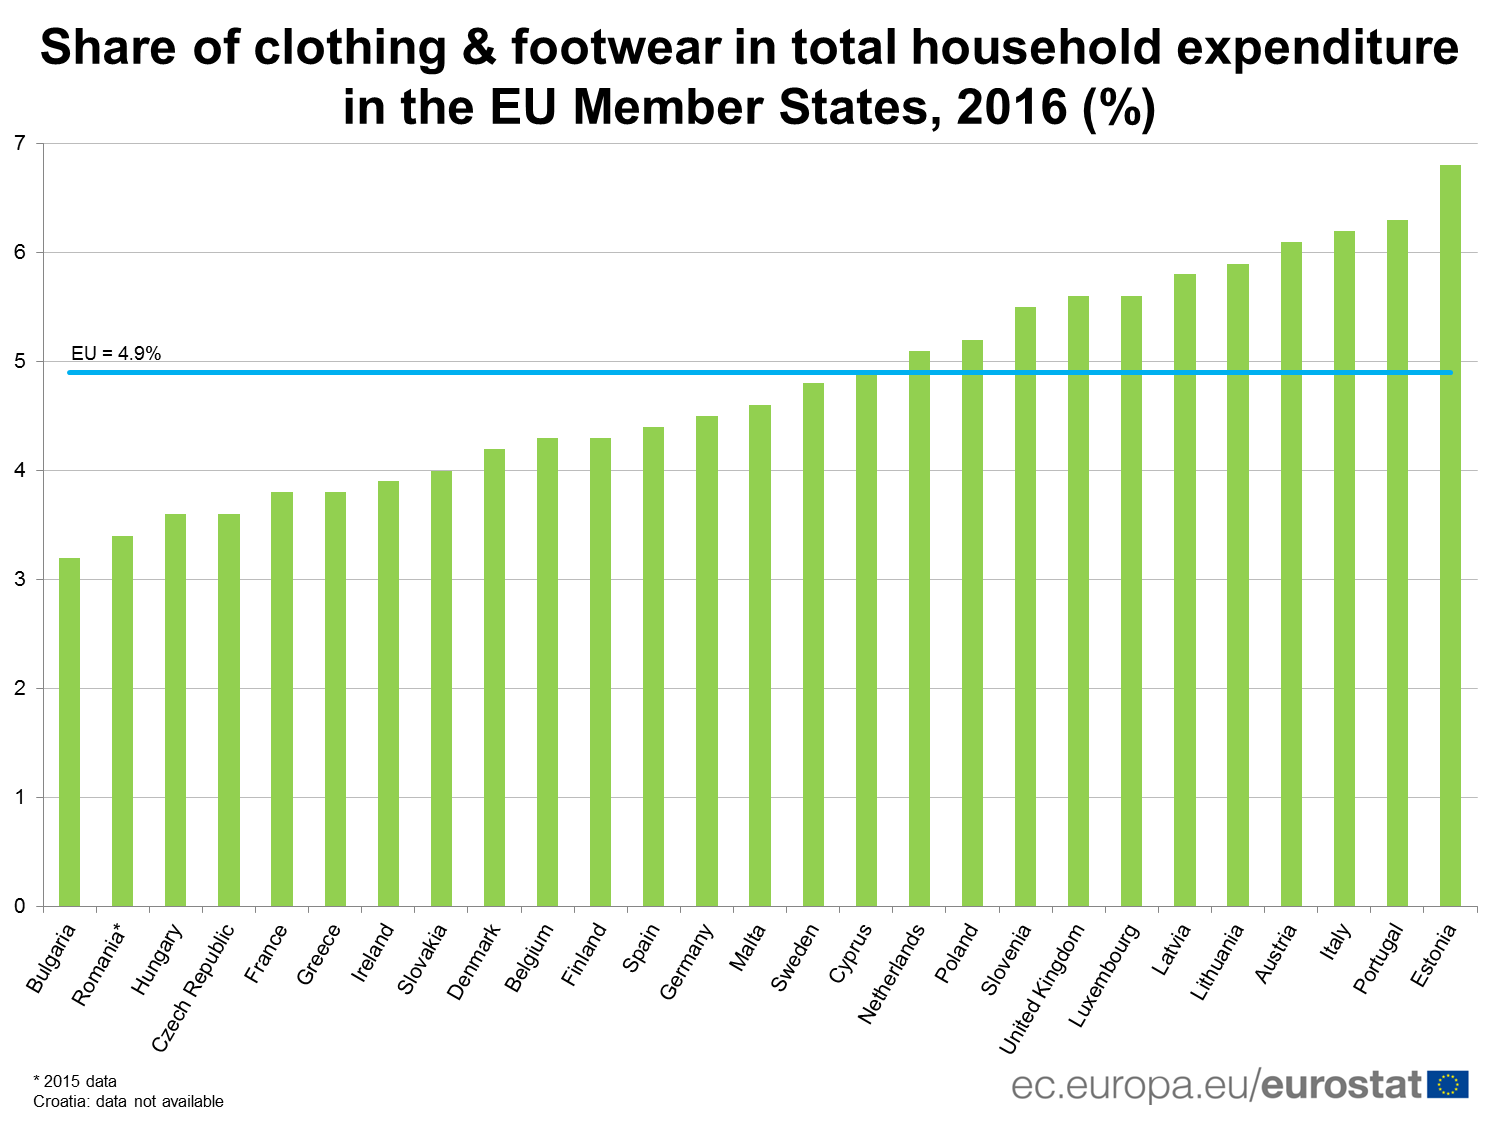 Share of clothing and footwear in total household expenditure in the EU Member States, 2016